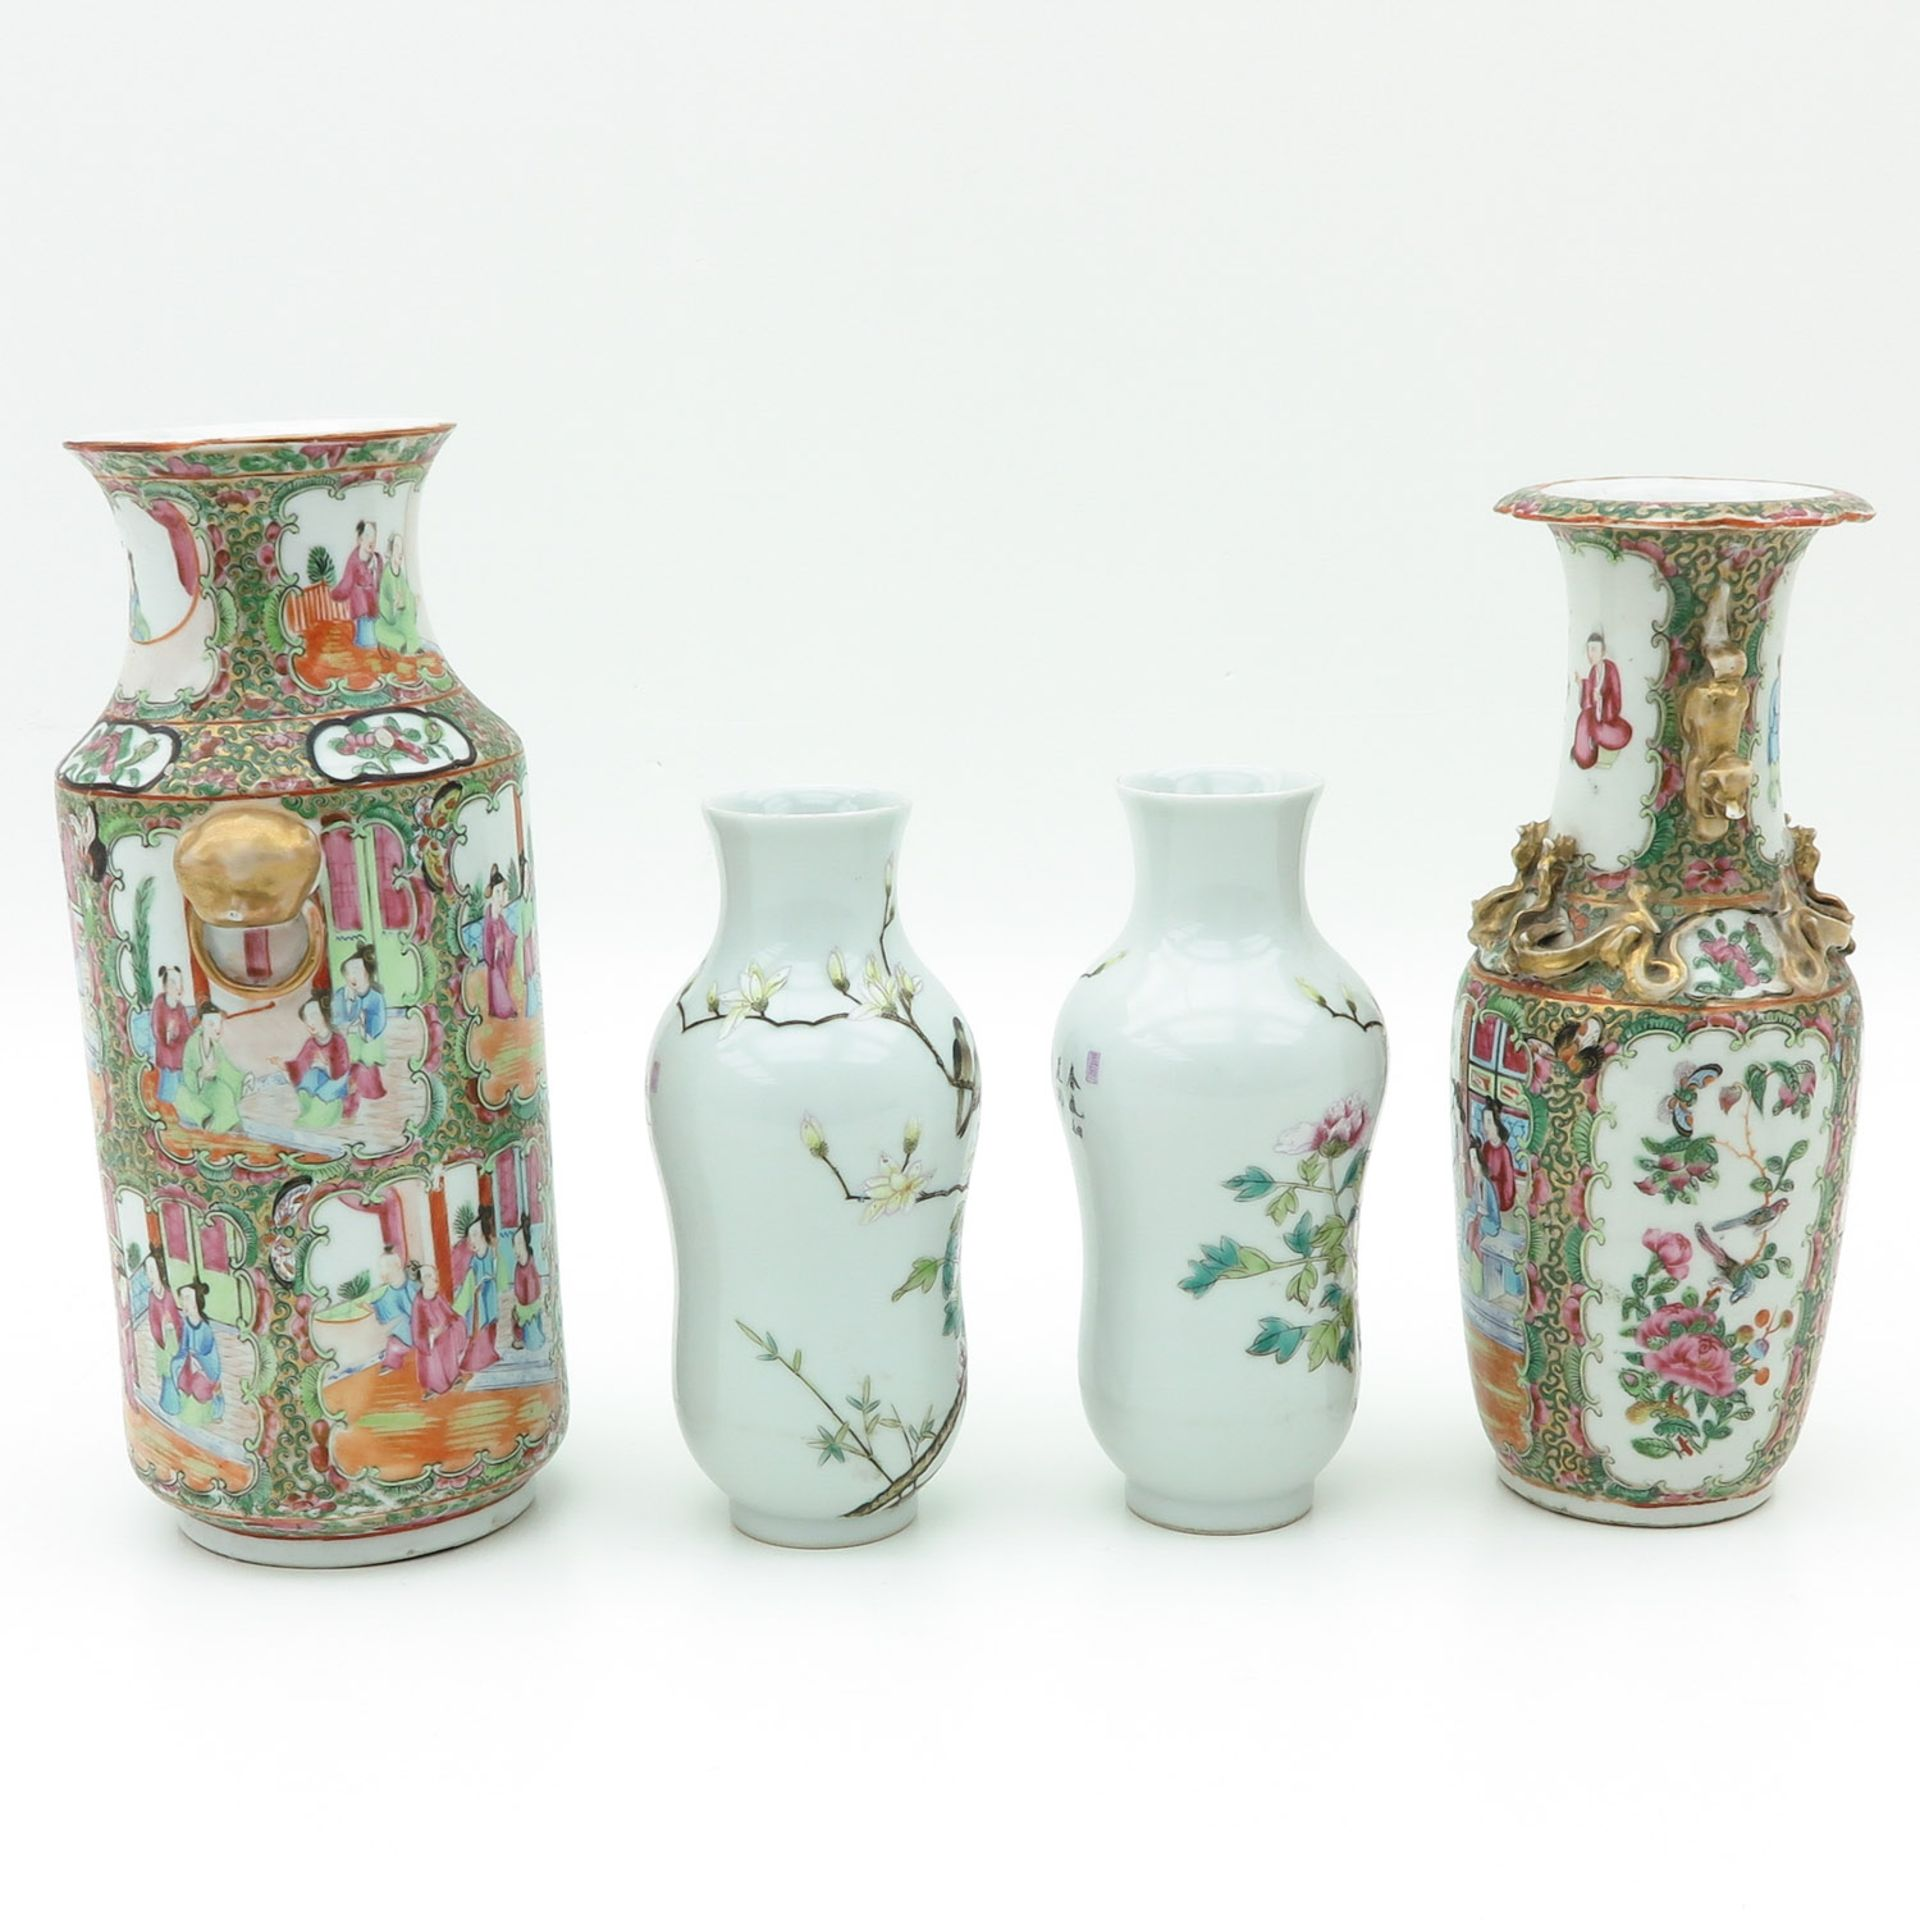 Los 7028 - A Collection of Four Vases